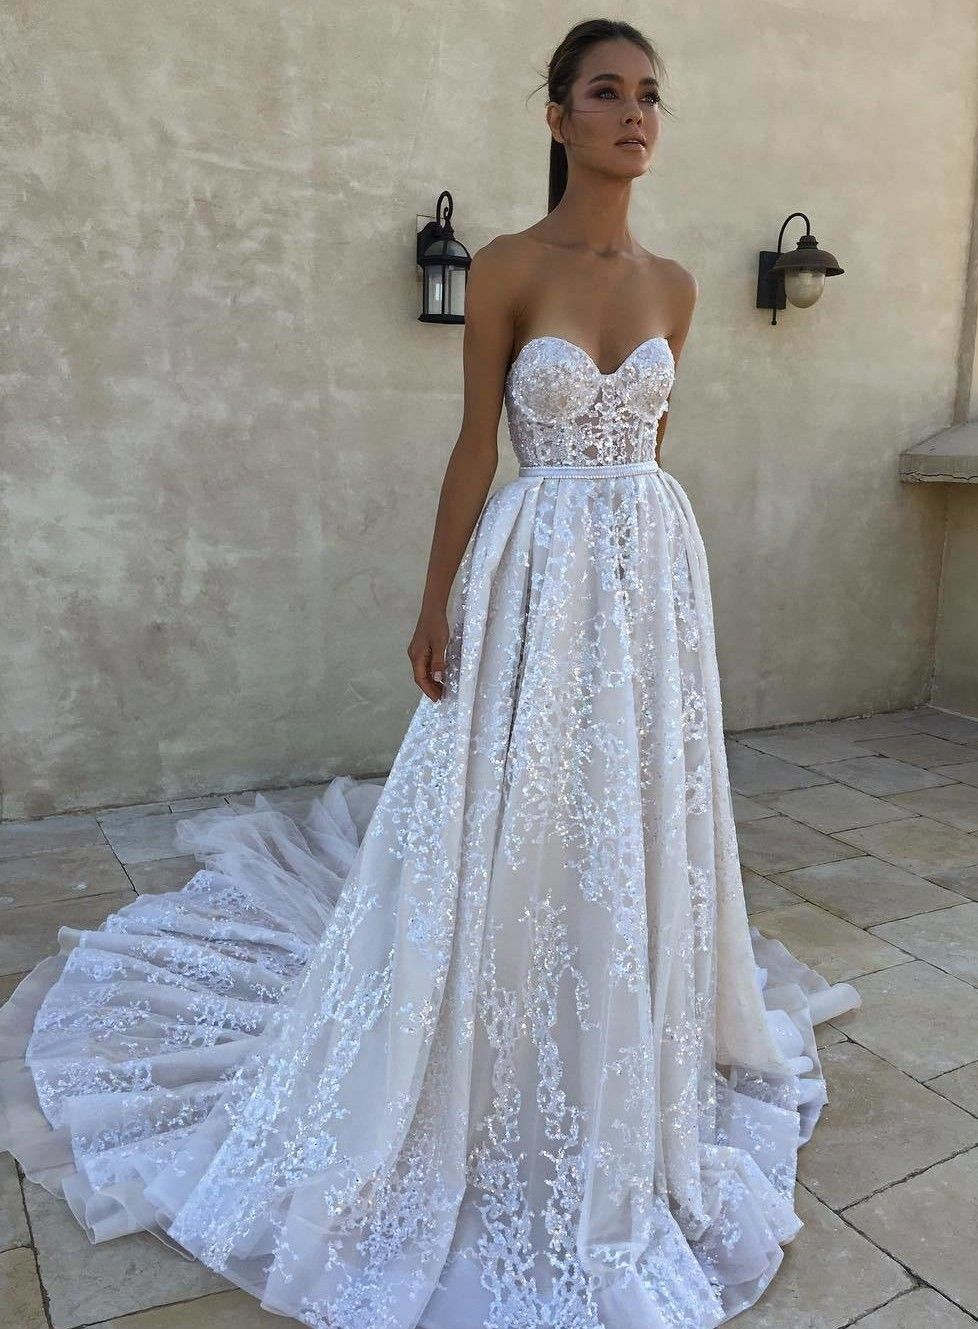 Beautiful wedding dress weddingdress the vow pinterest beautiful wedding dress weddingdress junglespirit Image collections